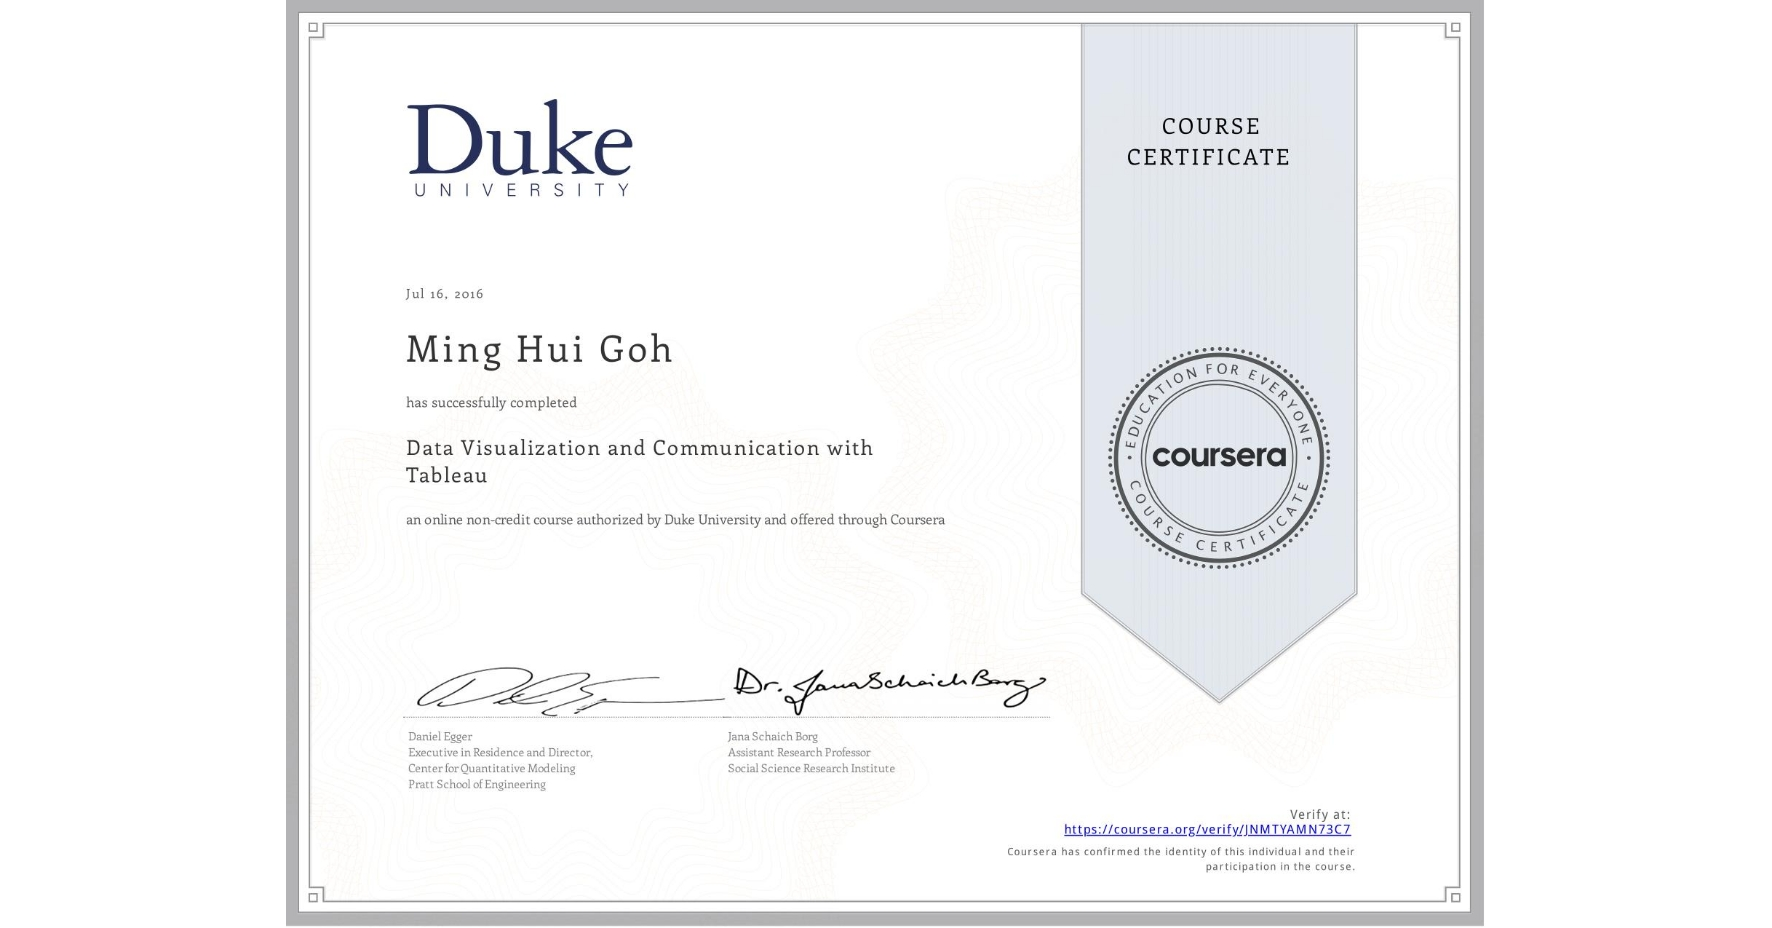 View certificate for Ming Hui  Goh, Data Visualization and Communication with Tableau, an online non-credit course authorized by Duke University and offered through Coursera